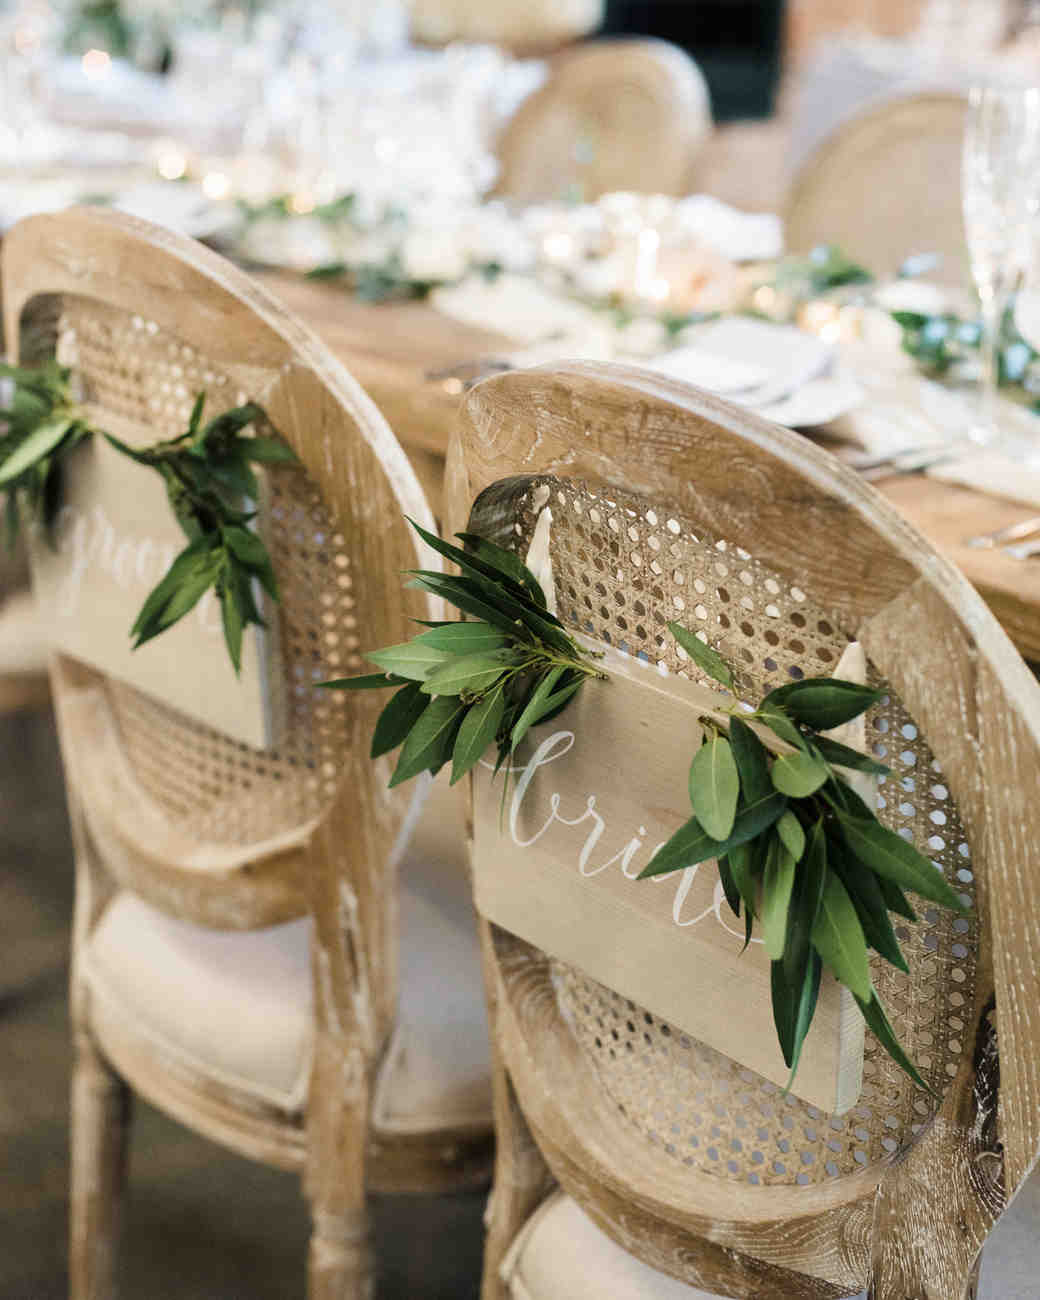 Wedding Head Table Decoration Ideas: 28 Ideas For Sitting Pretty At Your Head Table